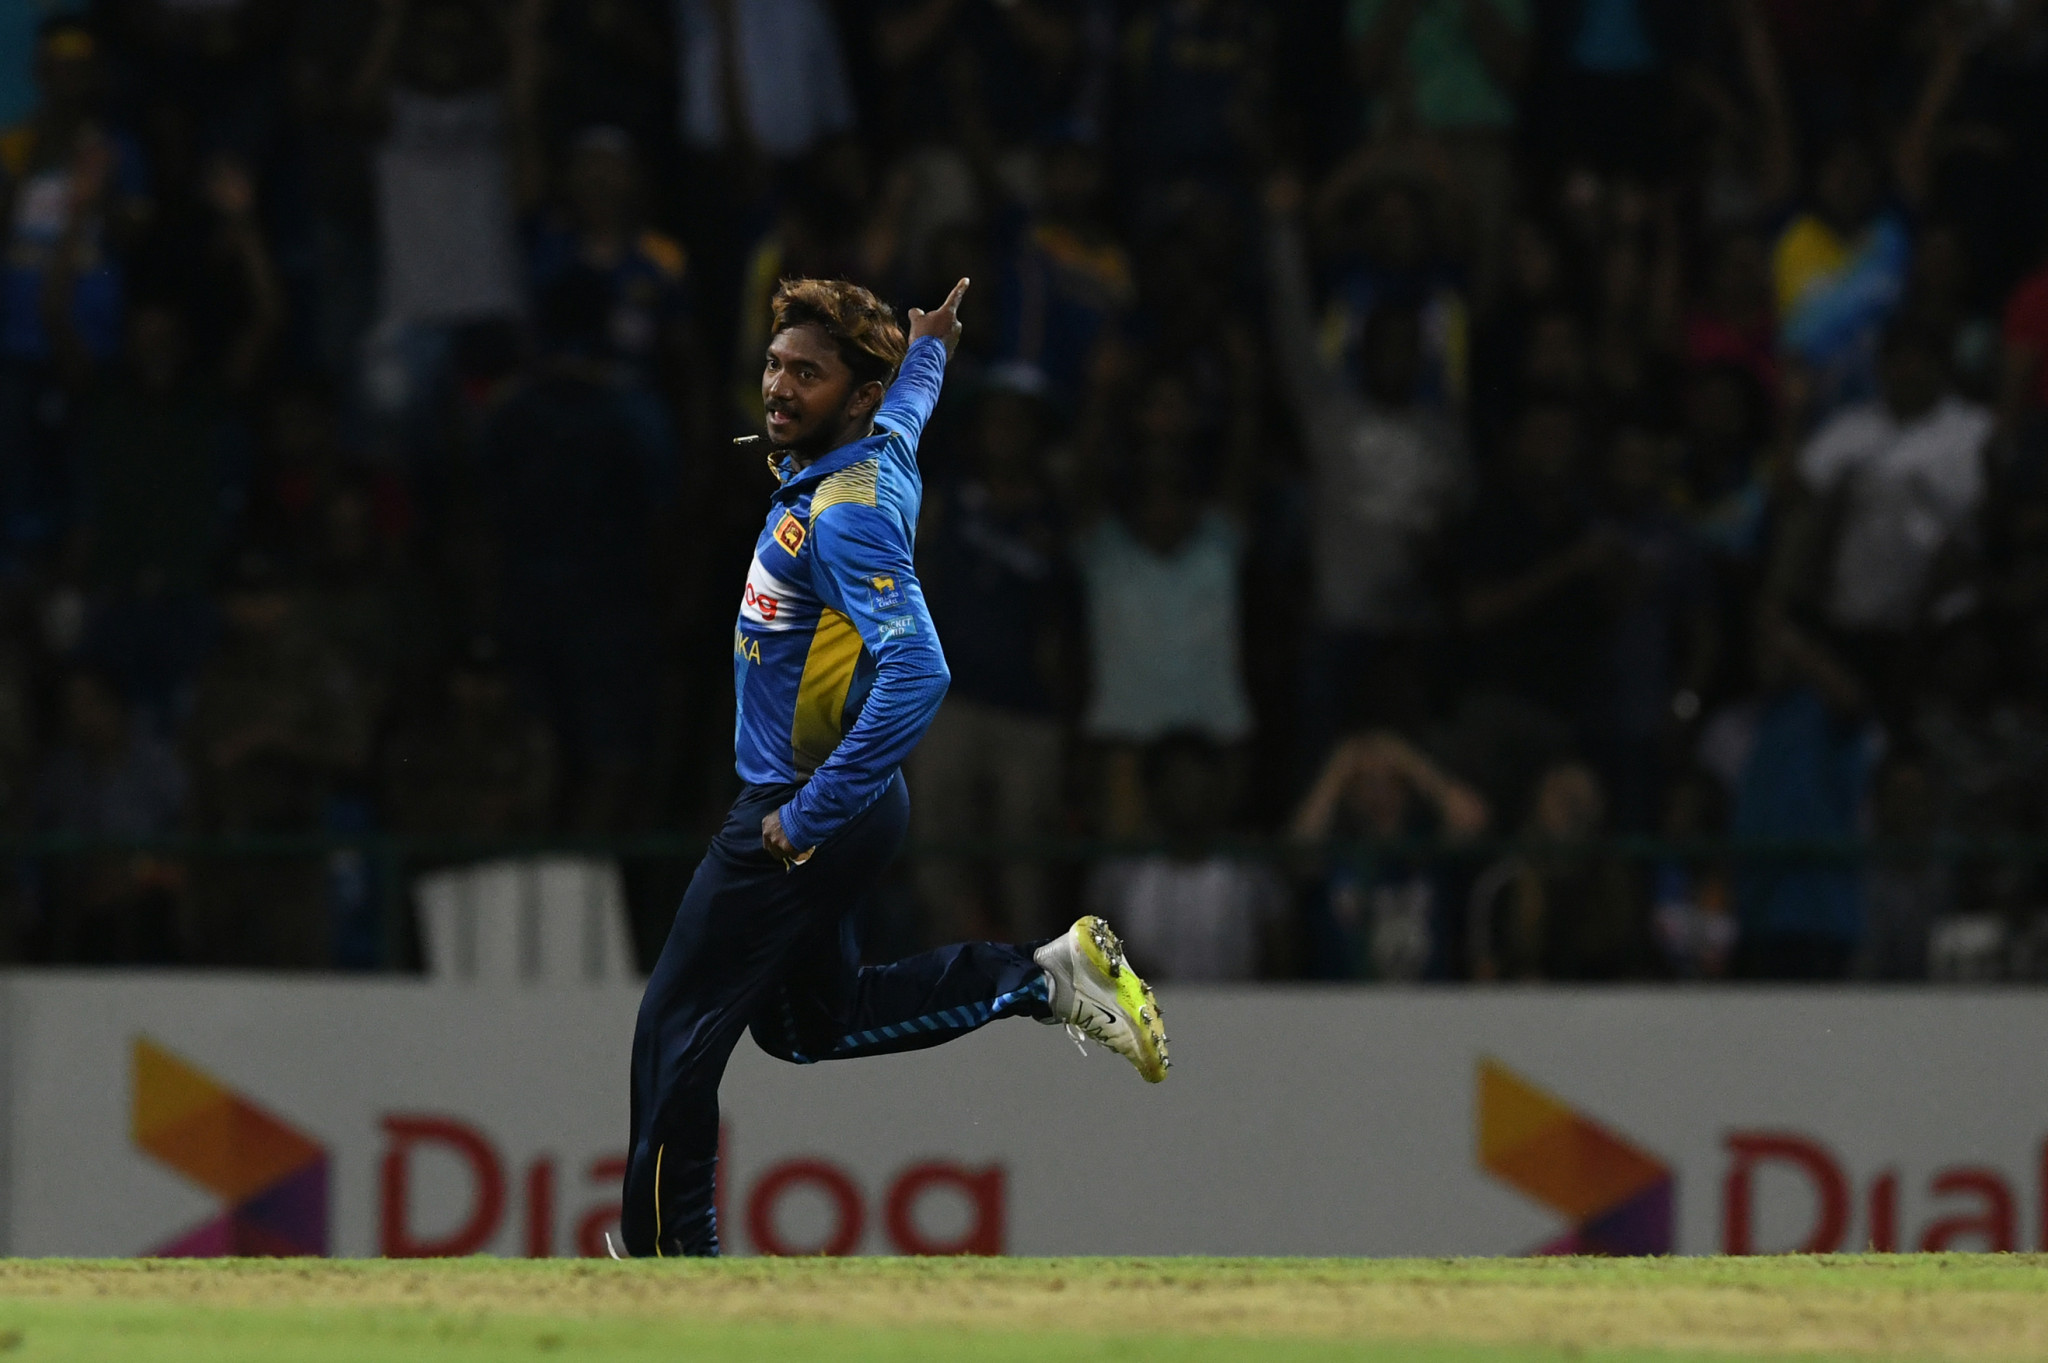 ICC hand Sri Lankan one year ban for illegal bowling action